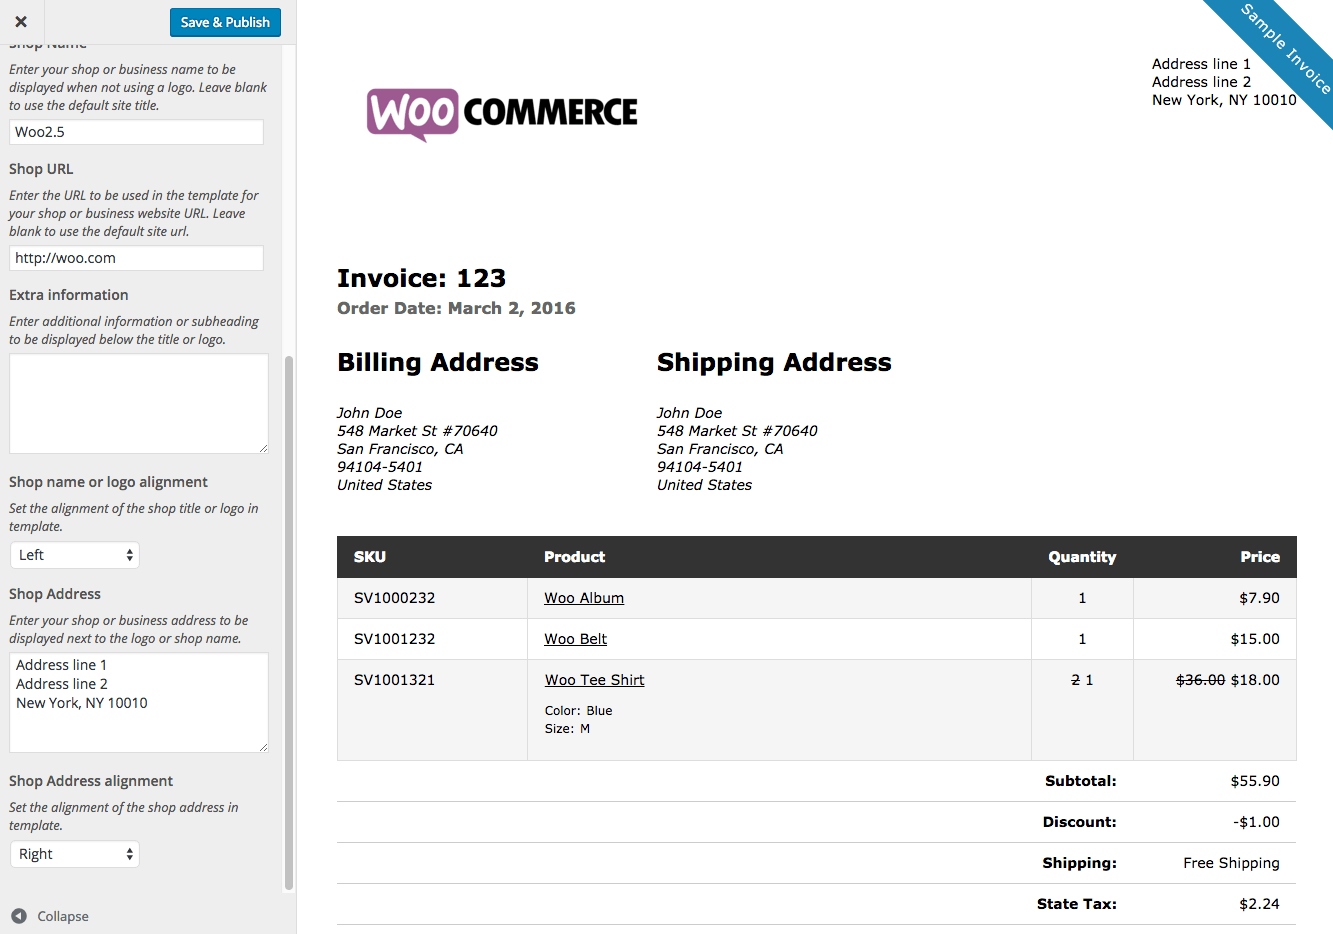 Ebitus  Splendid Woocommerce Print Invoices Amp Packing Lists  Woocommerce Docs With Exciting Woocommerce Print Invoices  Packing Lists Customizer With Extraordinary Receipt Scanner App Reviews Also Receipt Organiser In Addition Faulty Goods No Receipt And Meps Receipt As Well As Receipt Account Additionally Cash Receipt Book Format From Docswoocommercecom With Ebitus  Exciting Woocommerce Print Invoices Amp Packing Lists  Woocommerce Docs With Extraordinary Woocommerce Print Invoices  Packing Lists Customizer And Splendid Receipt Scanner App Reviews Also Receipt Organiser In Addition Faulty Goods No Receipt From Docswoocommercecom